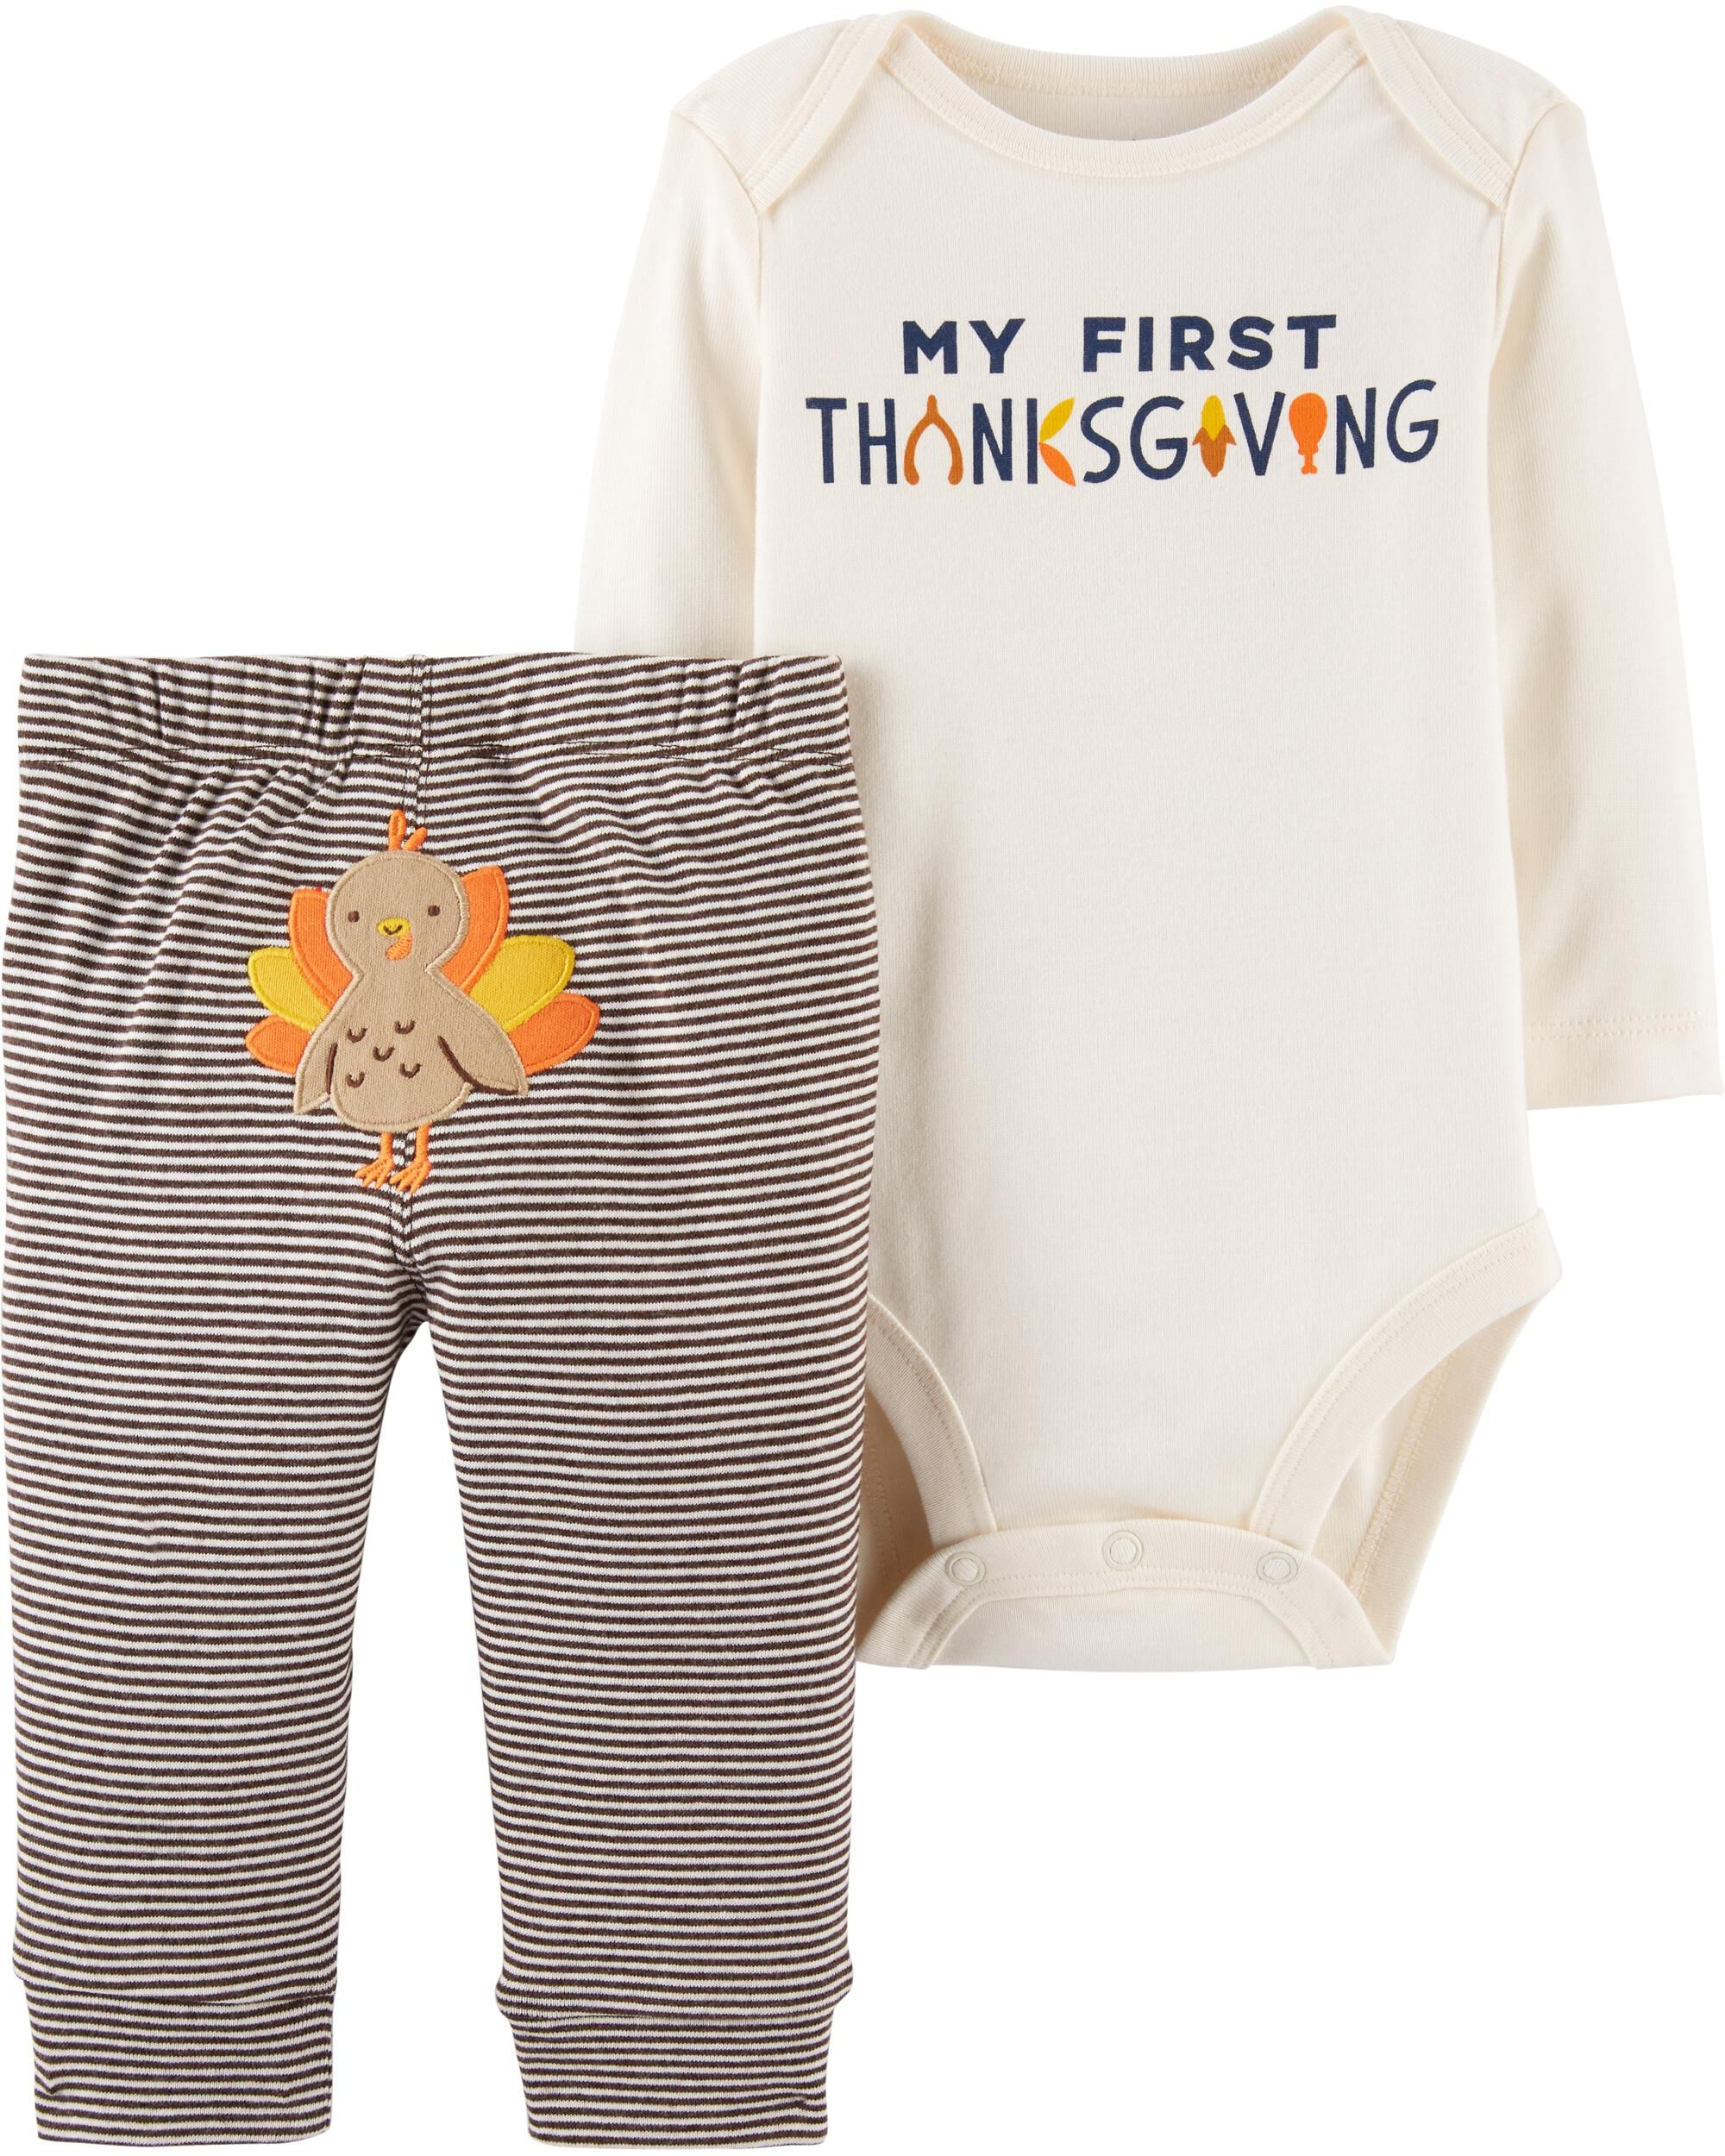 New Carter/'s Thanksgiving Boys Outfit Bodysuit Top /& Pants Set NWT preemie 18m